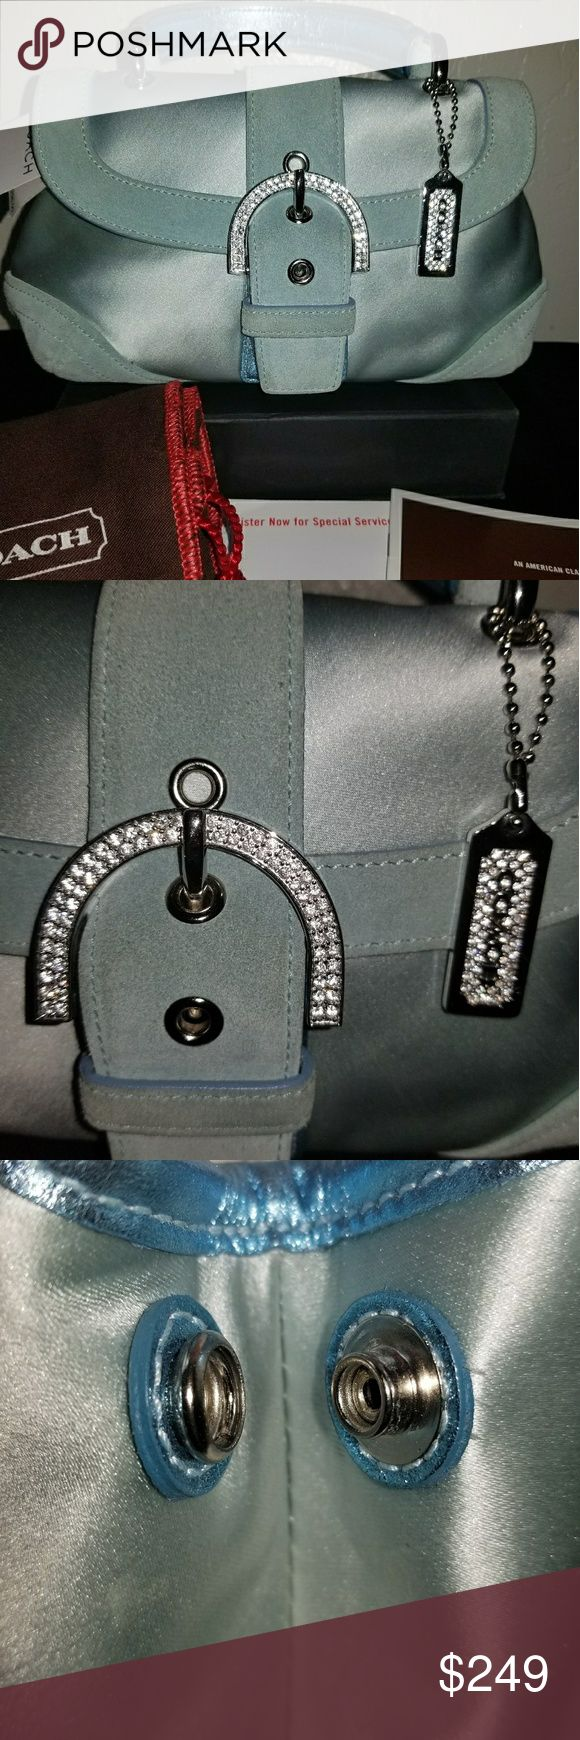 🎈⚠️NWT! RARE SATIN COACH SATCHEL 🌟Very RARE Vintage COACH Baby Blue Satin Satchel with Suede trim, Silver hardware and Swarovski Crystal embellishment. It Is Brand-new with the tags 100% Authentic and comes with dust cover. 💲RETAIL $298  🎀GET A FREE AUTHENTIC COACH SILVER BANGLE BRACELET WHEN YOU BUY IT NOW FOR ONLY $249! Coach Bags Satchels